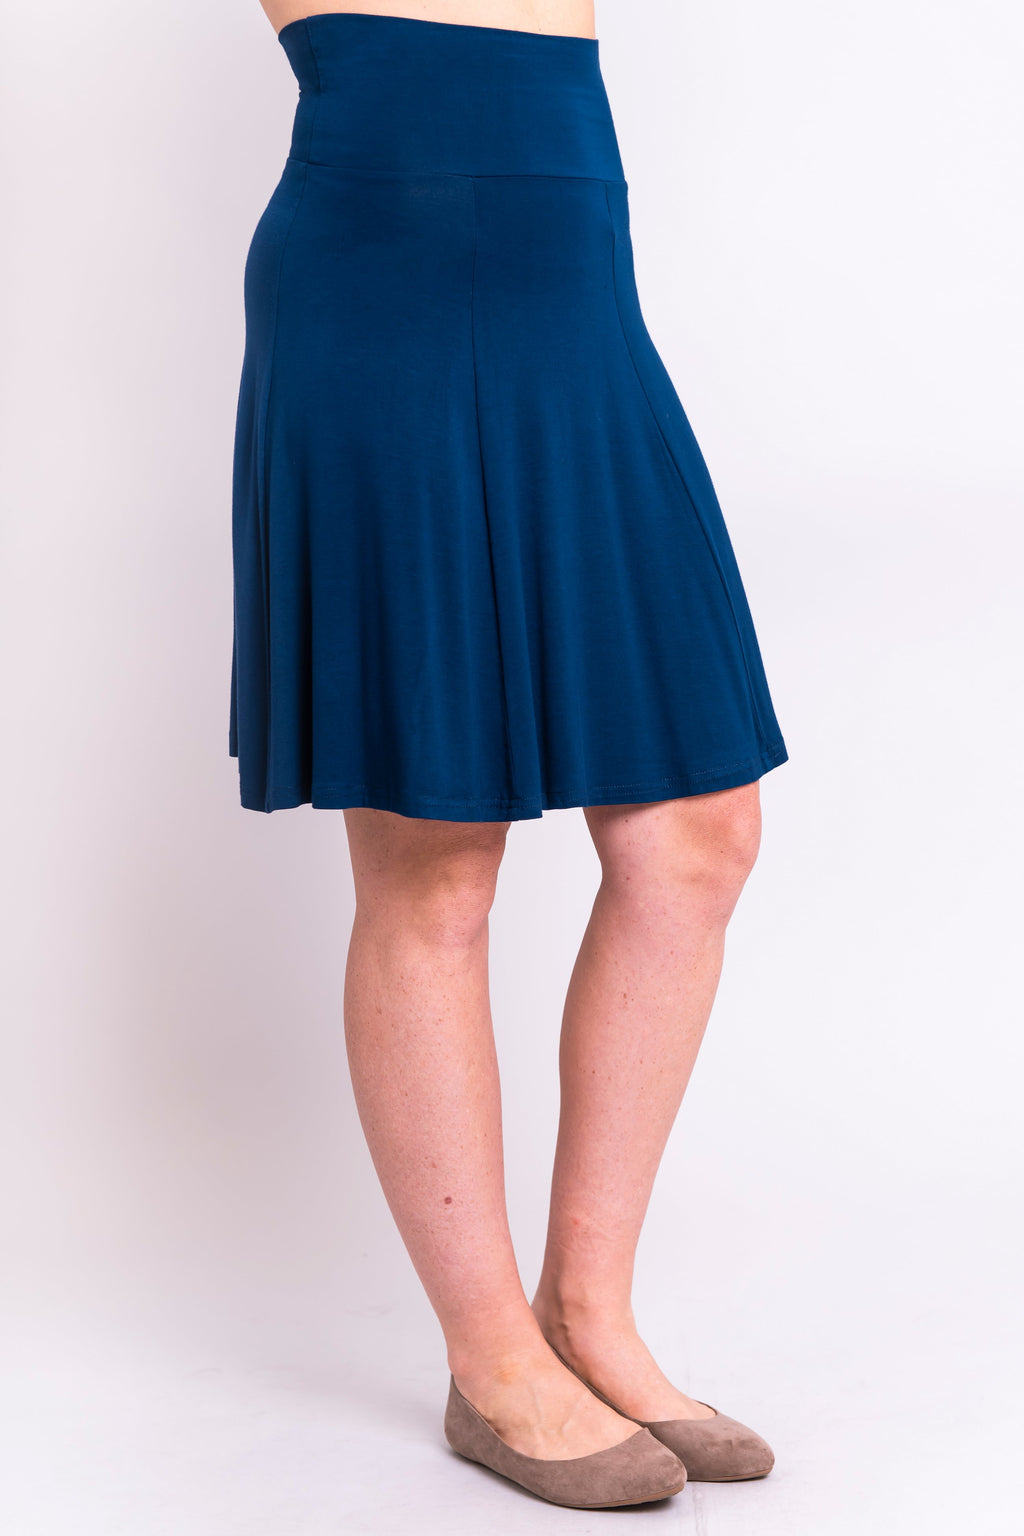 Aly Skirt, Indigo, Bamboo - Blue Sky Clothing Co